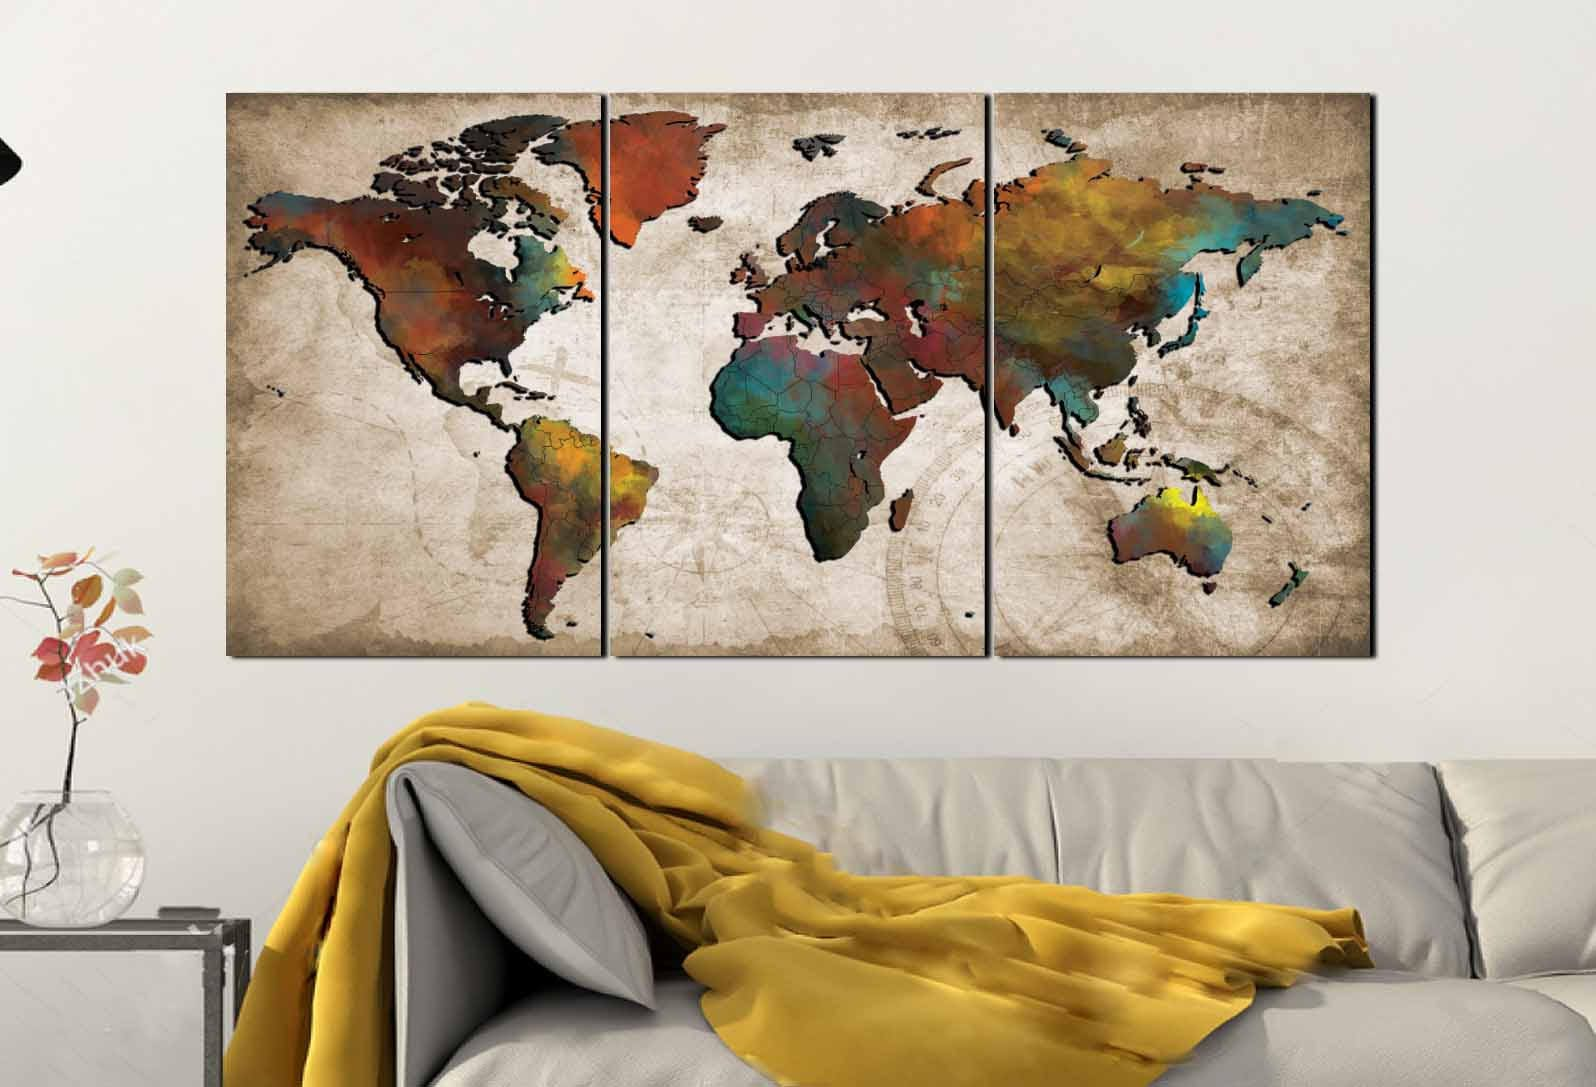 World map wall artabstract push pin mapcolorful world mapworld world map wall artabstract push pin mapcolorful world mapworld map posterworld map artworld map canvastravel maptravel map posterart gumiabroncs Gallery